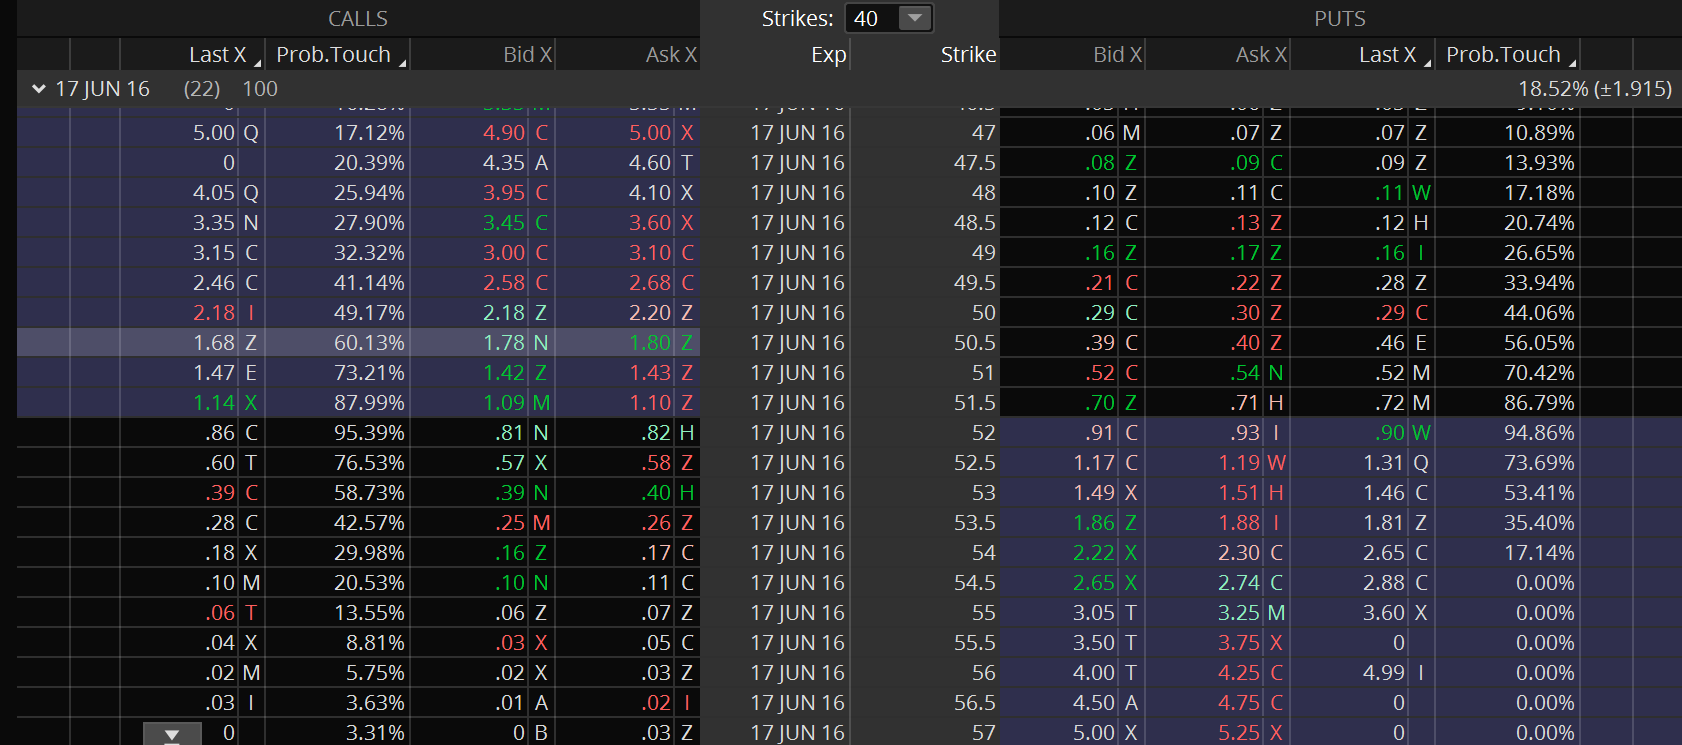 MSFT Options Prices - 22 Days until expiration